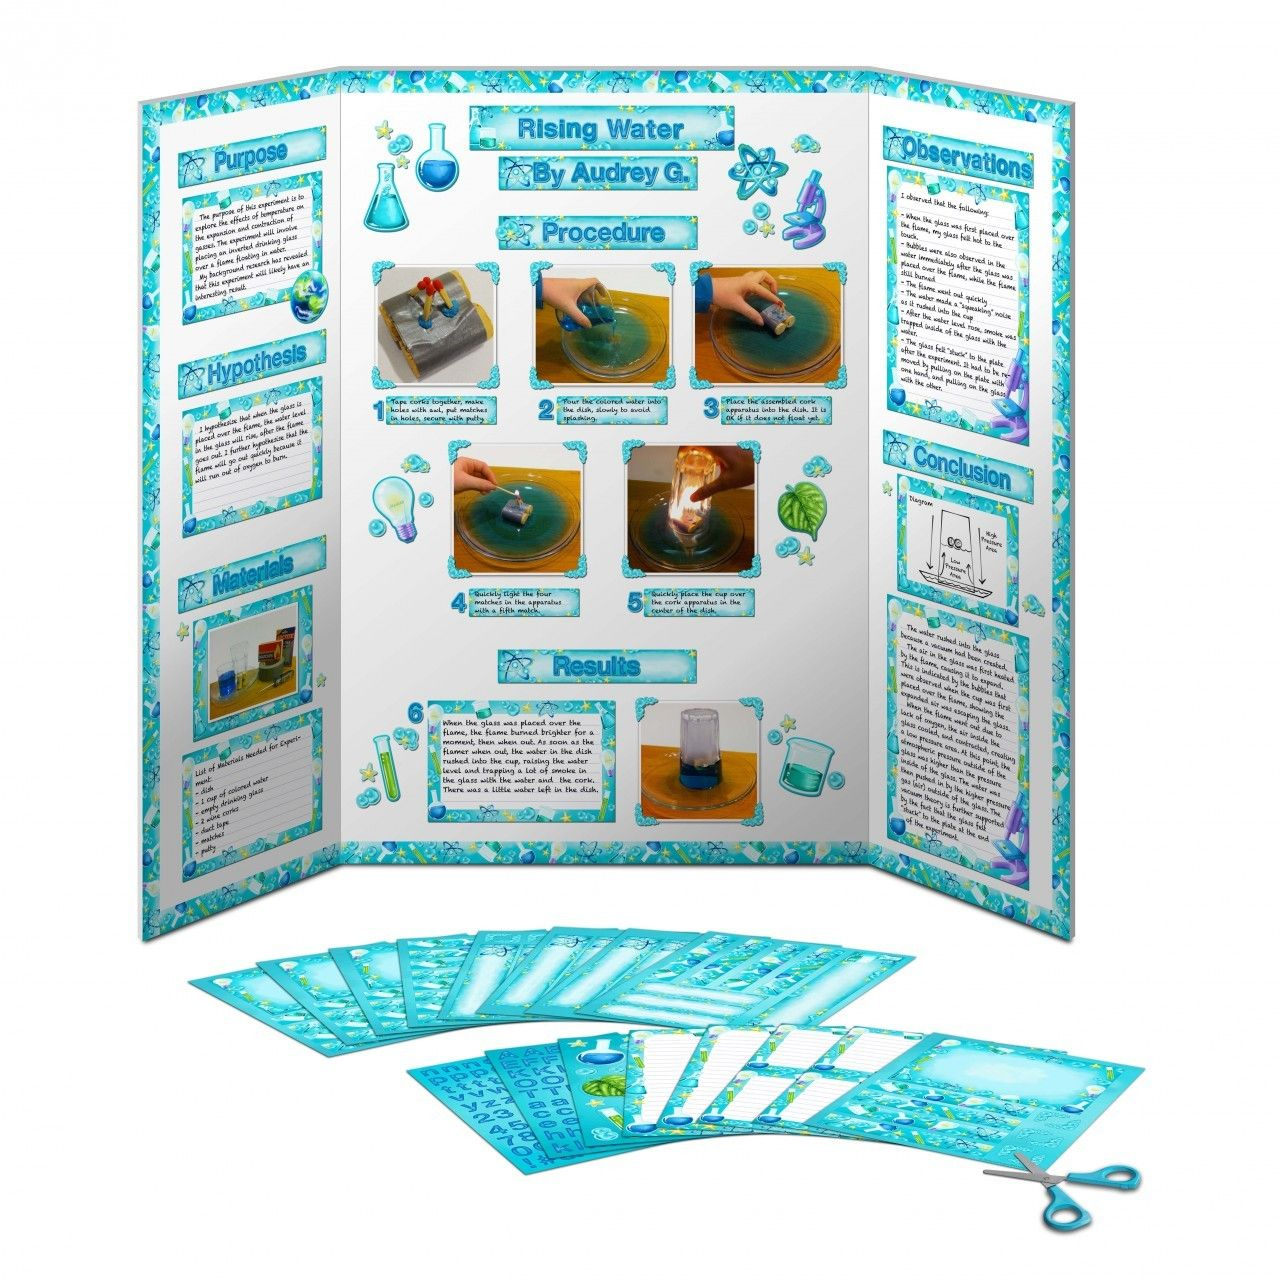 Science Fair Display Board Display Board Poster Project Kit